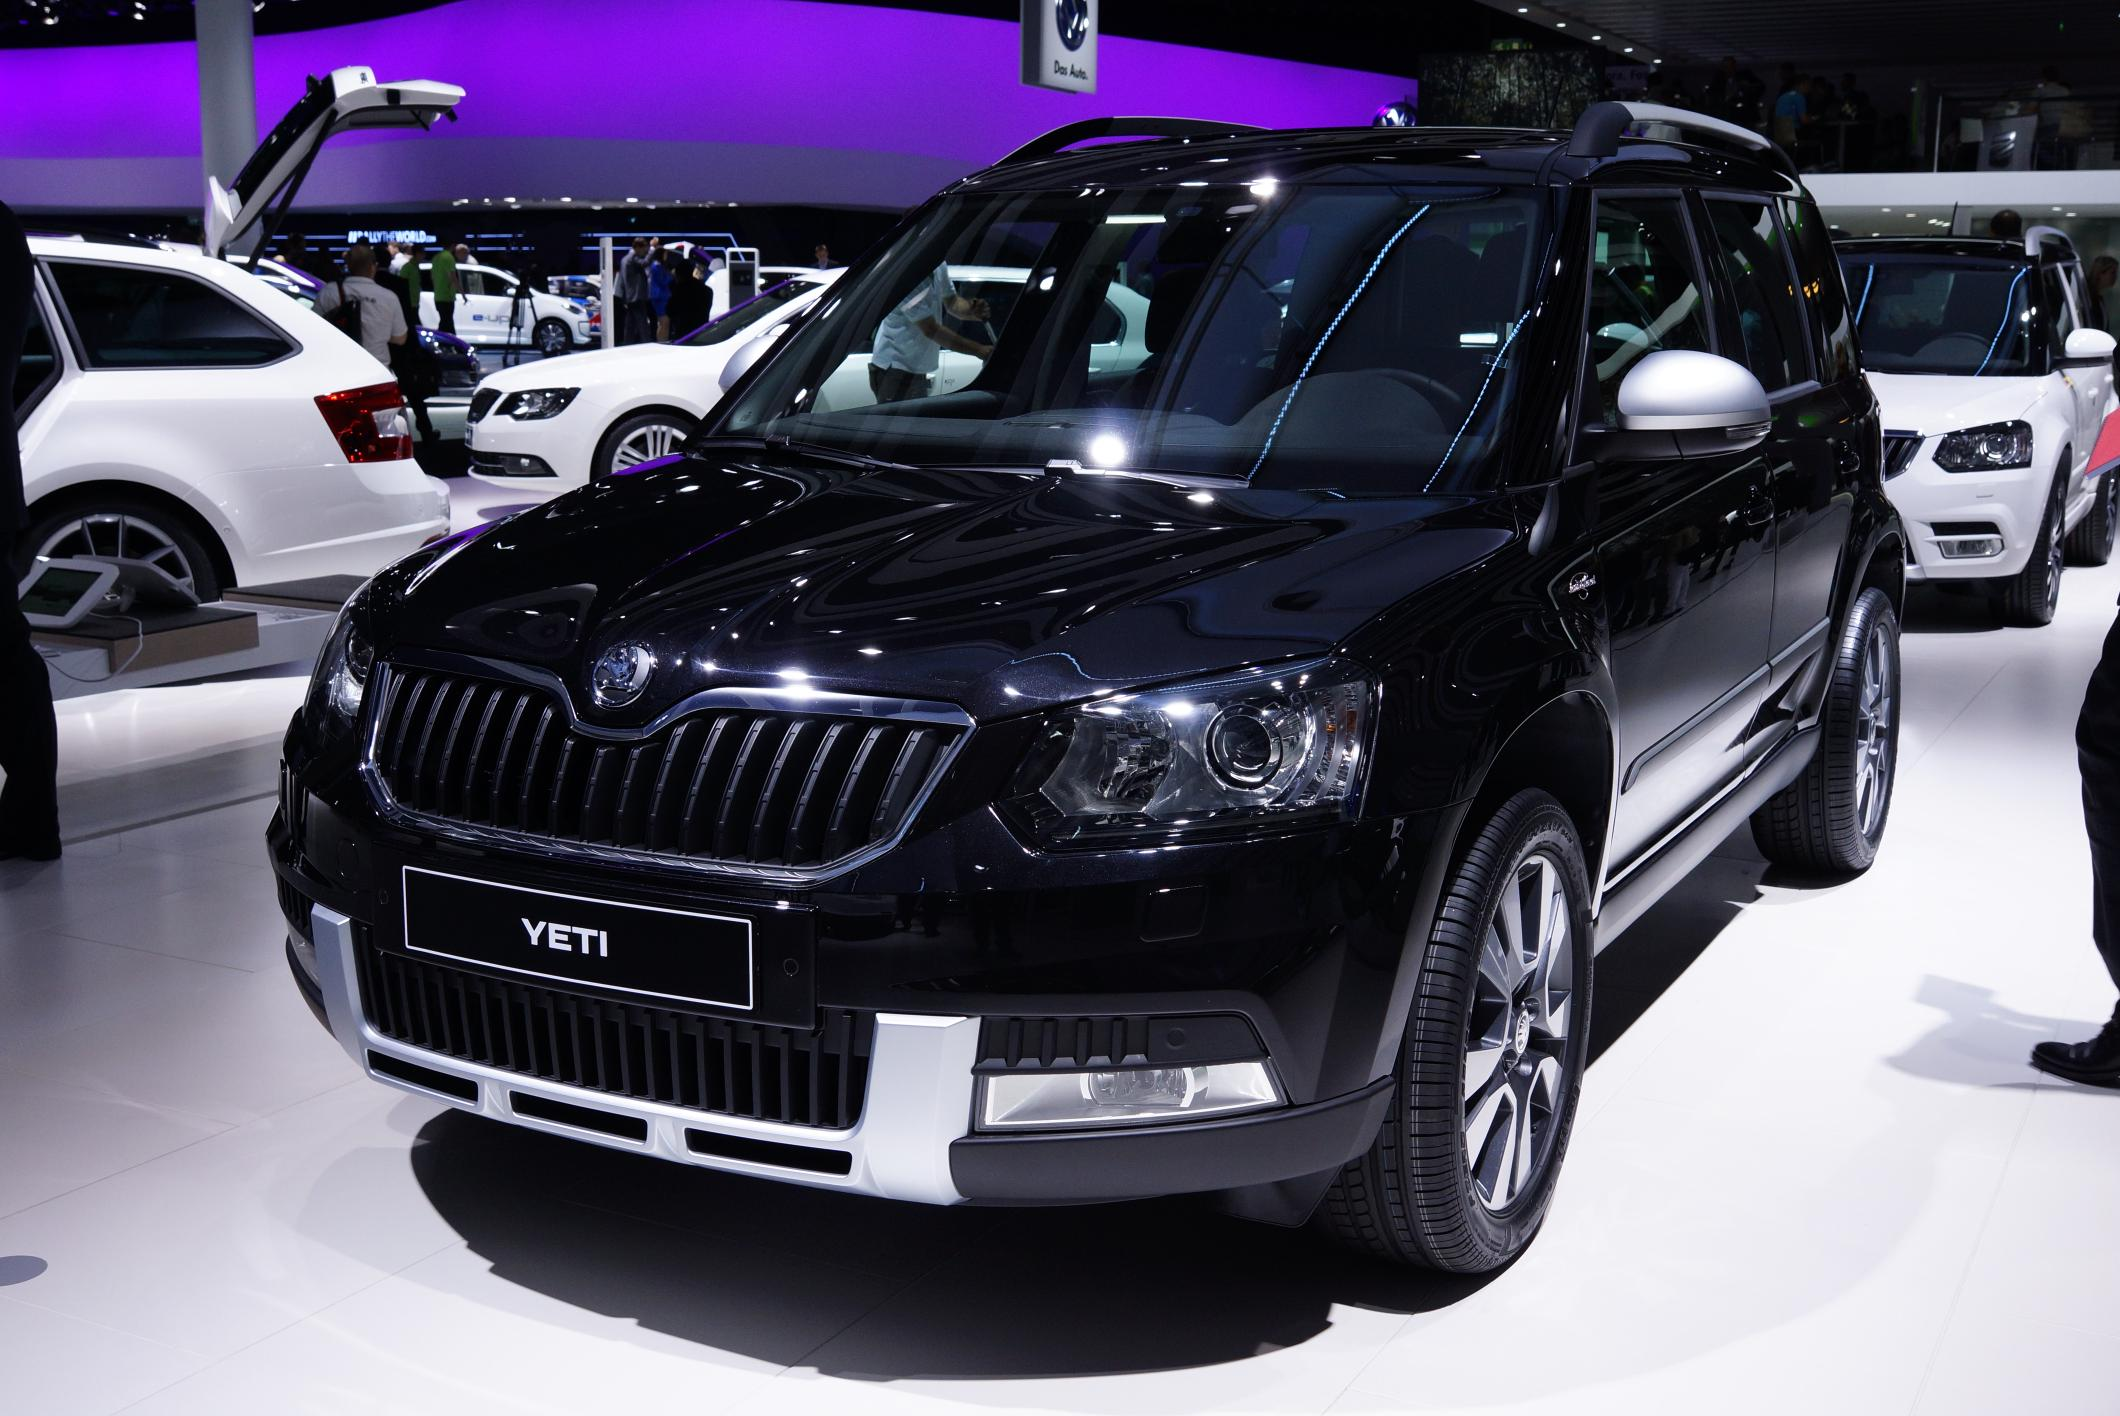 2013 skoda yeti facelift autos post. Black Bedroom Furniture Sets. Home Design Ideas